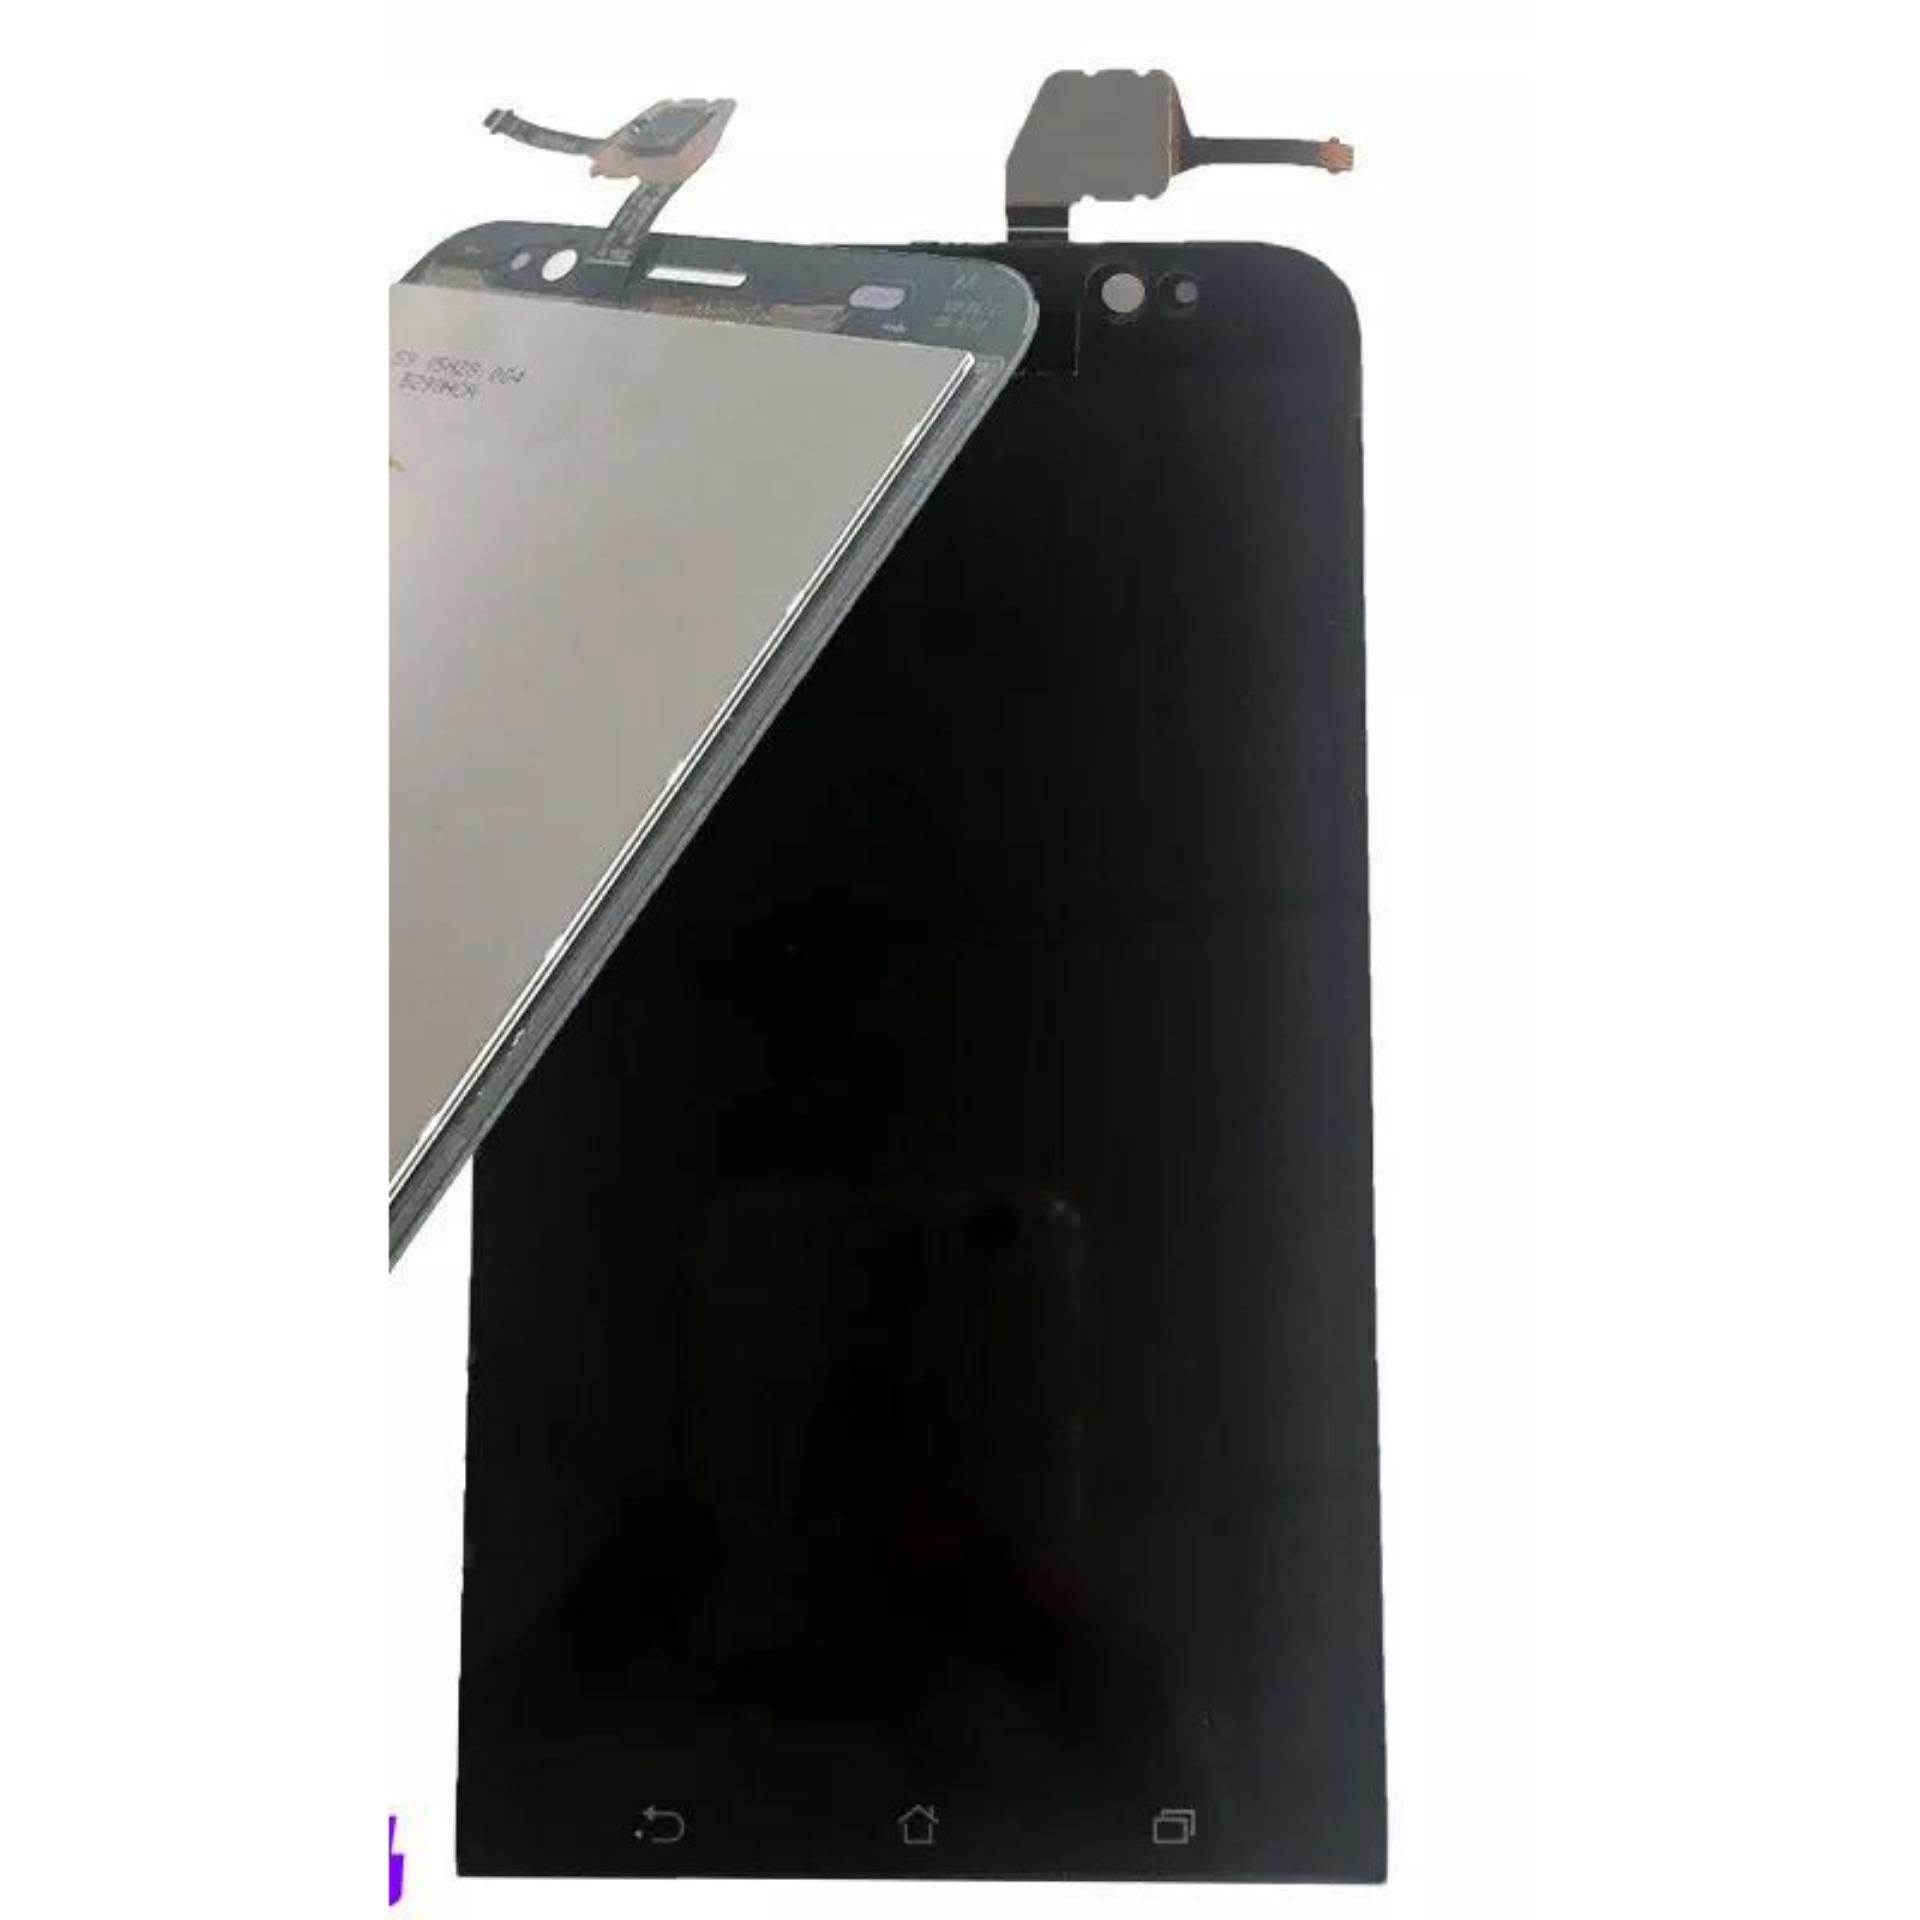 Cellphone Parts For Sale Repair Tools Prices Brands Lcd Touchscreen Samsung S5 White Oem Asus Zenfone 2 55 Ze551ml Z00ad Display Touch Screen Digitizer